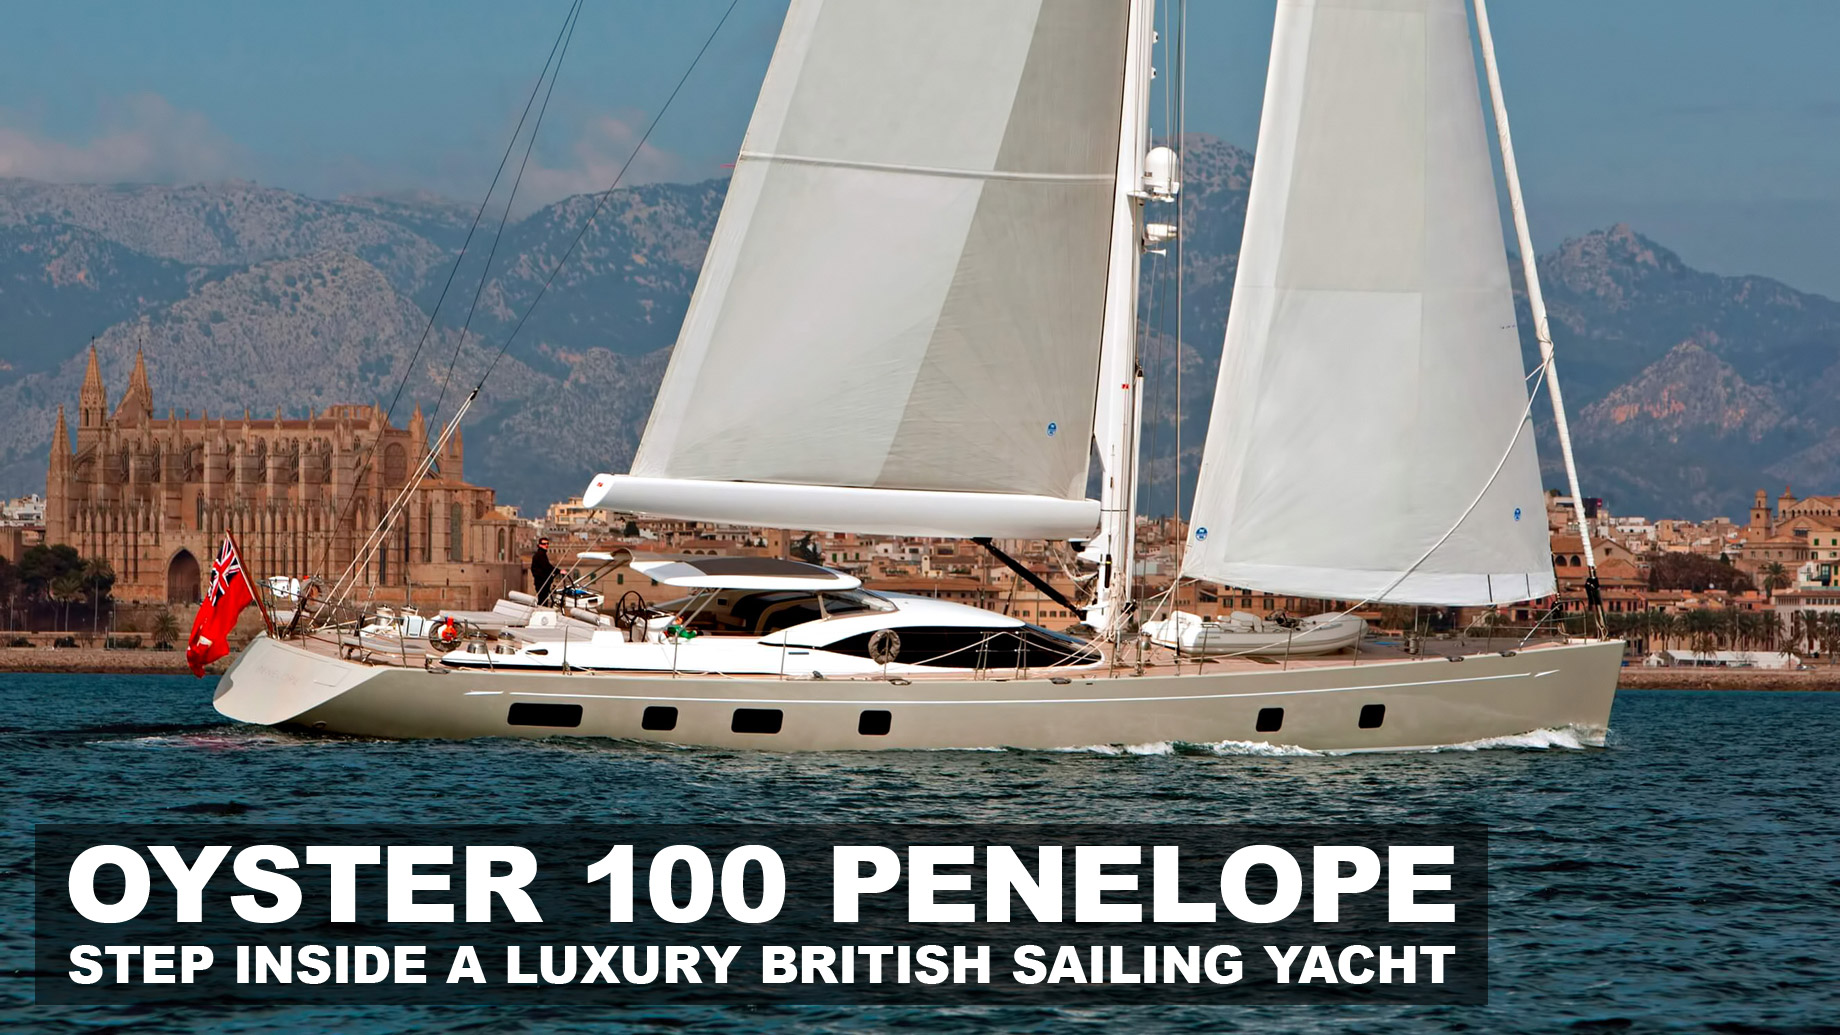 Oyster 100 Penelope – Step Inside A Luxury British Sailing Yacht